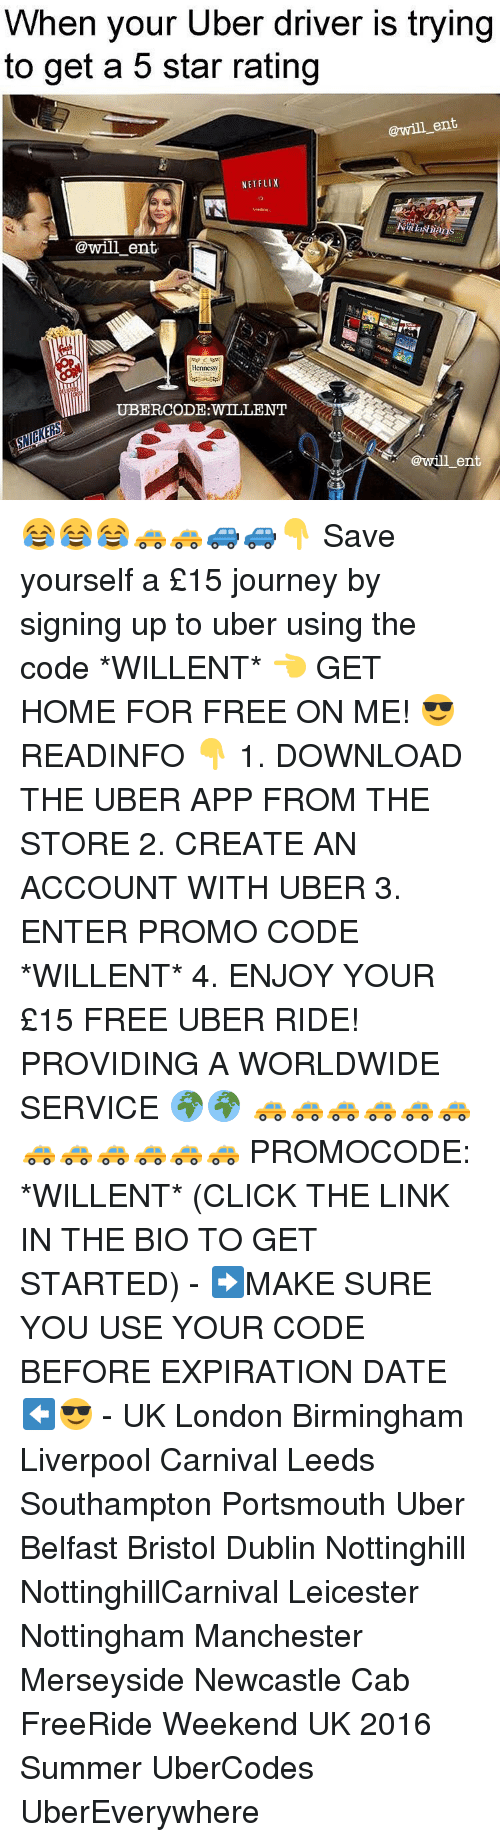 Hennessy, Memes, and Uber Driver: When your Uber driver is trying  to get a 5 star rating  @will ent  NETFLIX  @will ent.  Hennessy  @will ent 😂😂😂🚕🚕🚙🚙👇 Save yourself a £15 journey by signing up to uber using the code *WILLENT* 👈 GET HOME FOR FREE ON ME! 😎 READINFO 👇 1. DOWNLOAD THE UBER APP FROM THE STORE 2. CREATE AN ACCOUNT WITH UBER 3. ENTER PROMO CODE *WILLENT* 4. ENJOY YOUR £15 FREE UBER RIDE! PROVIDING A WORLDWIDE SERVICE 🌍🌍 🚕🚕🚕🚕🚕🚕🚕🚕🚕🚕🚕🚕 PROMOCODE: *WILLENT* (CLICK THE LINK IN THE BIO TO GET STARTED) - ➡️MAKE SURE YOU USE YOUR CODE BEFORE EXPIRATION DATE ⬅️😎 - UK London Birmingham Liverpool Carnival Leeds Southampton Portsmouth Uber Belfast Bristol Dublin Nottinghill NottinghillCarnival Leicester Nottingham Manchester Merseyside Newcastle Cab FreeRide Weekend UK 2016 Summer UberCodes UberEverywhere